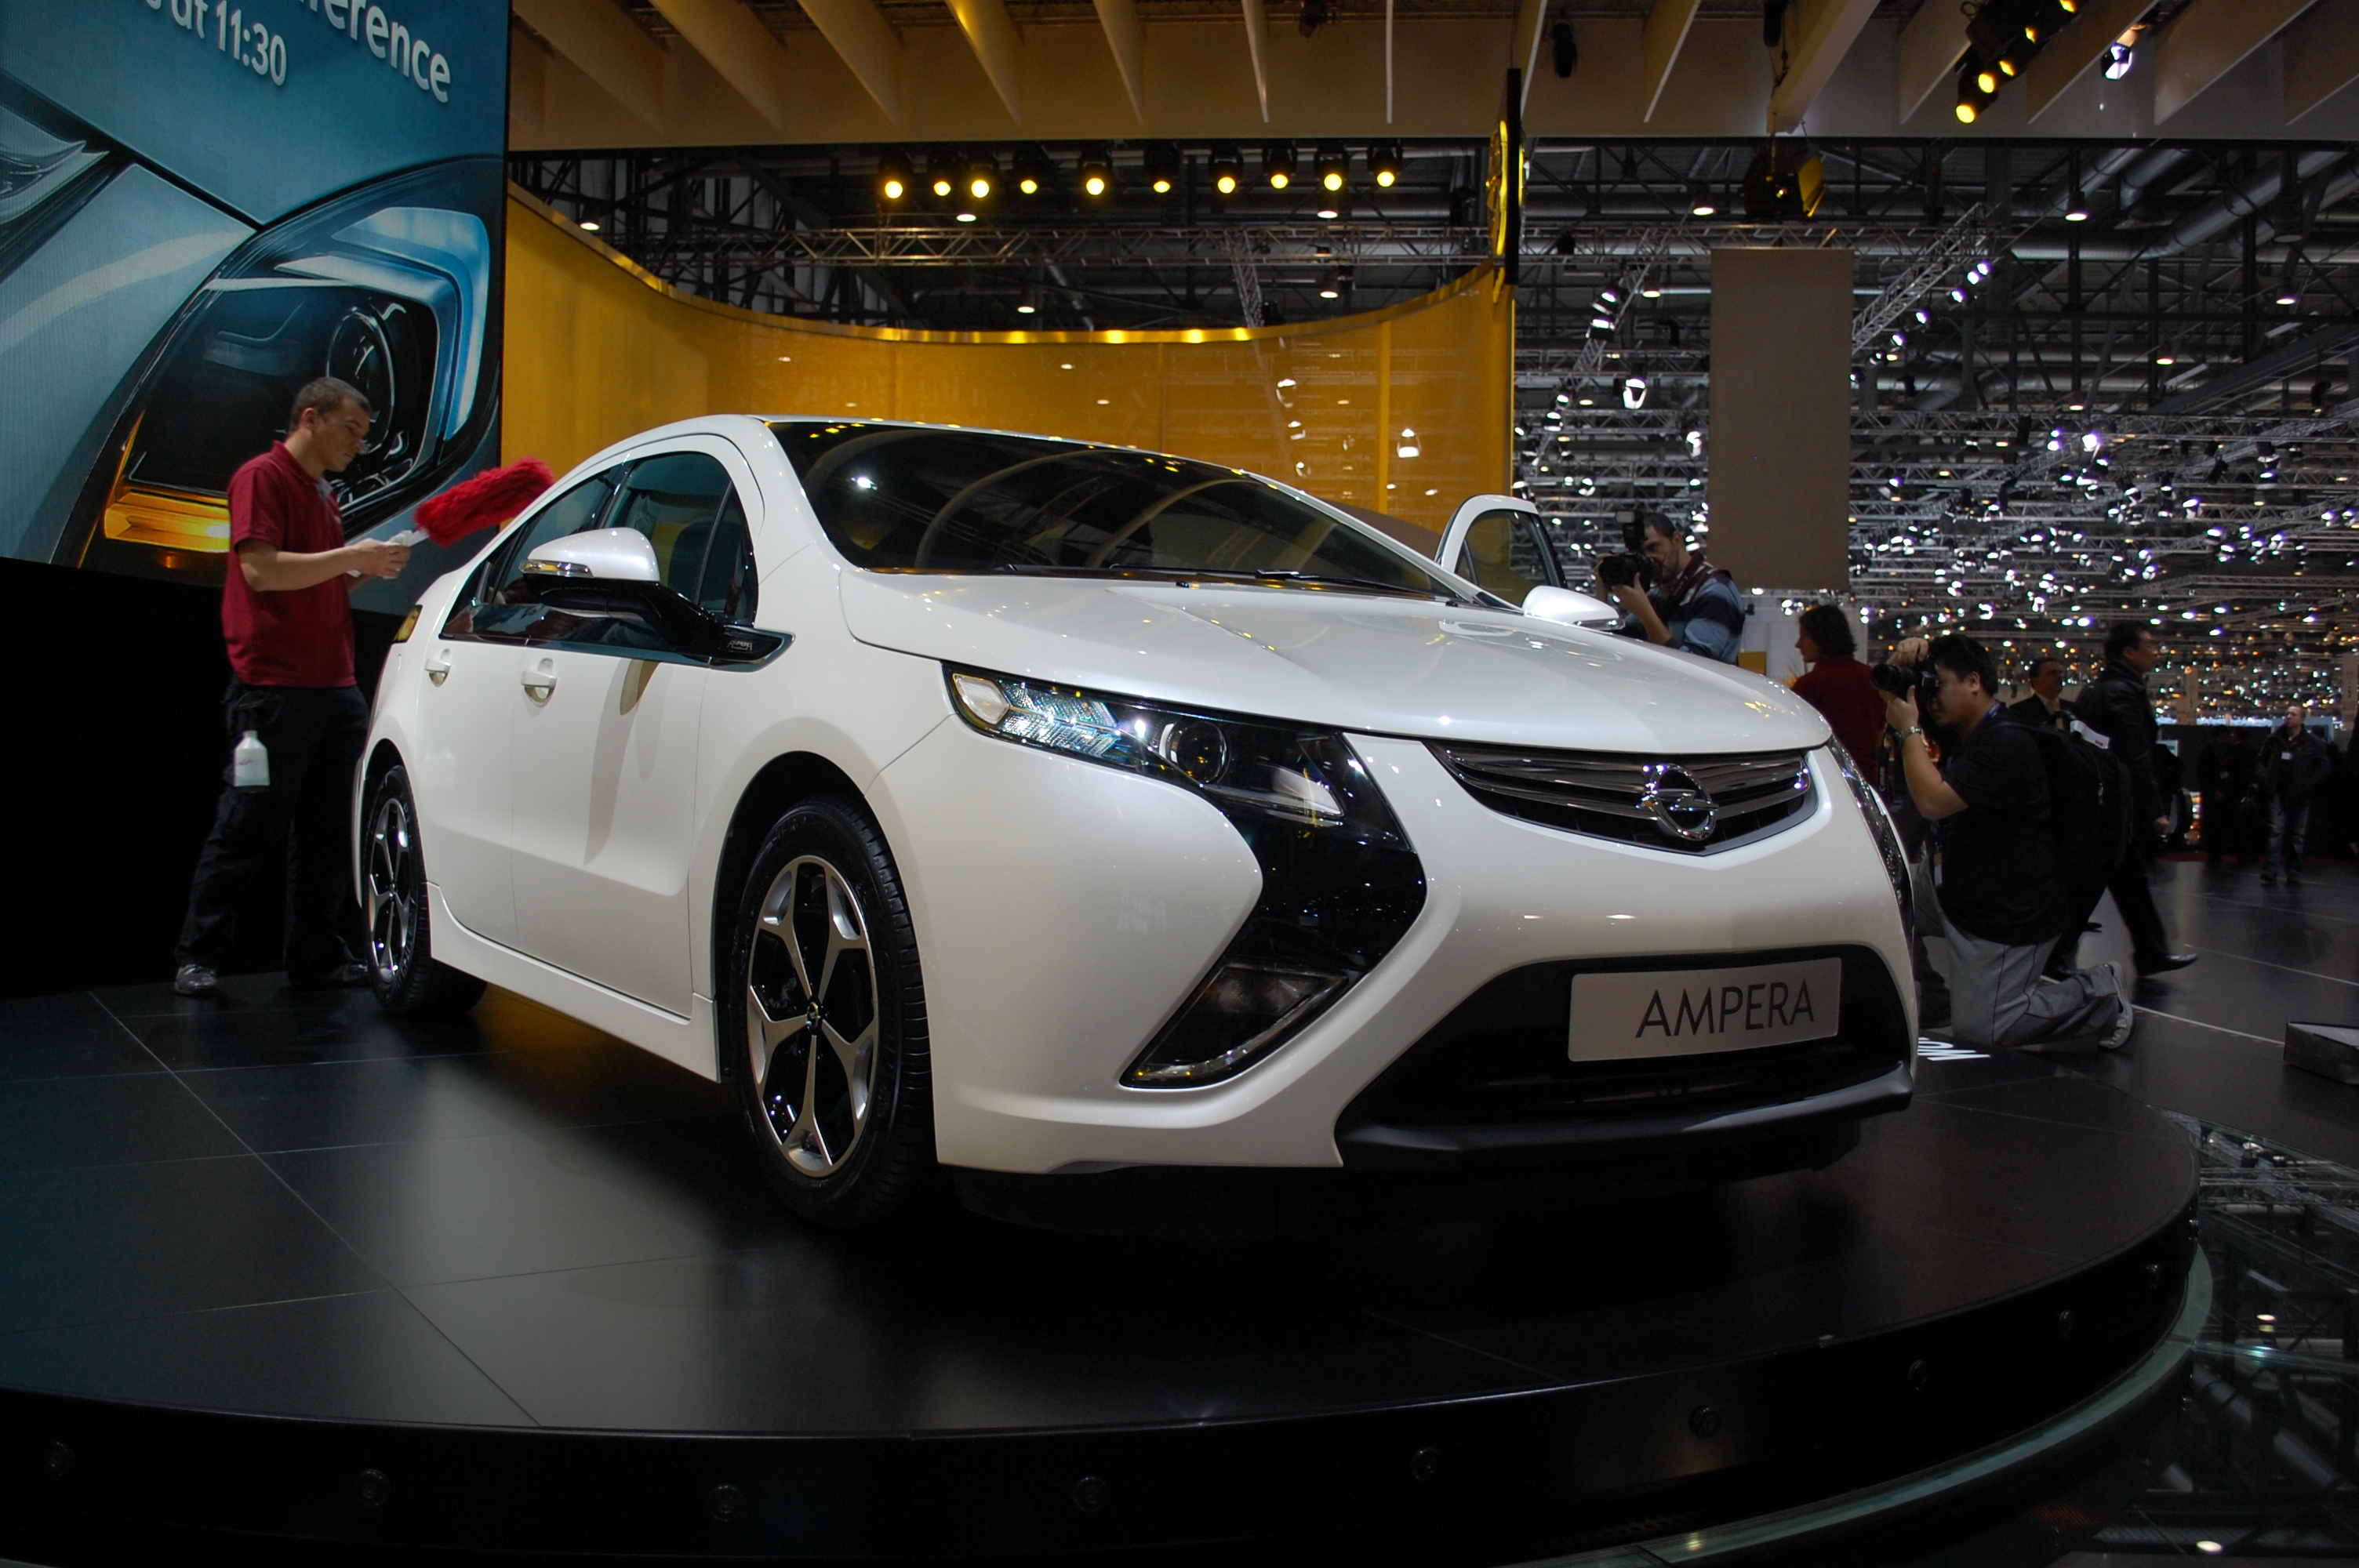 Opel Ampera (Chevy Volt) Voted 2012 European Car Of The Year